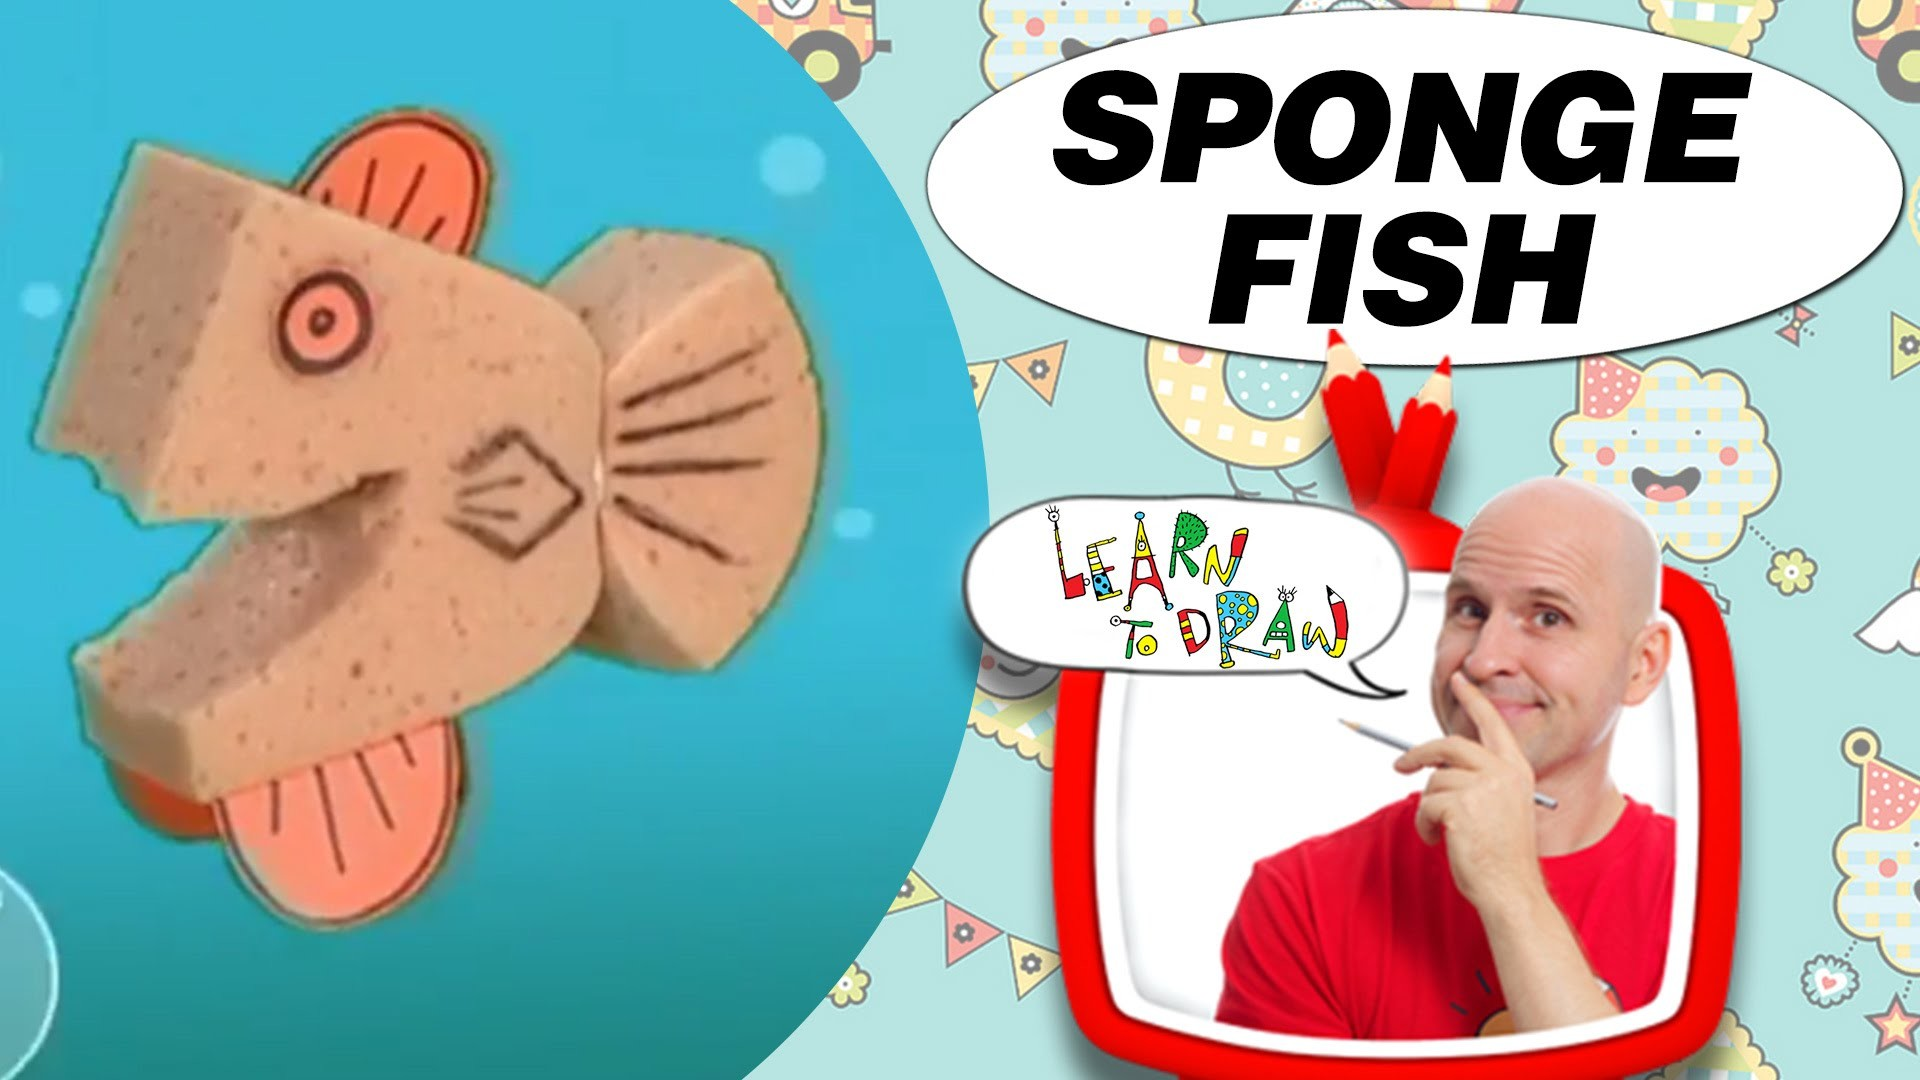 Crafts Ideas for Kids - Sponge Fish | DIY on BoxYourSelf